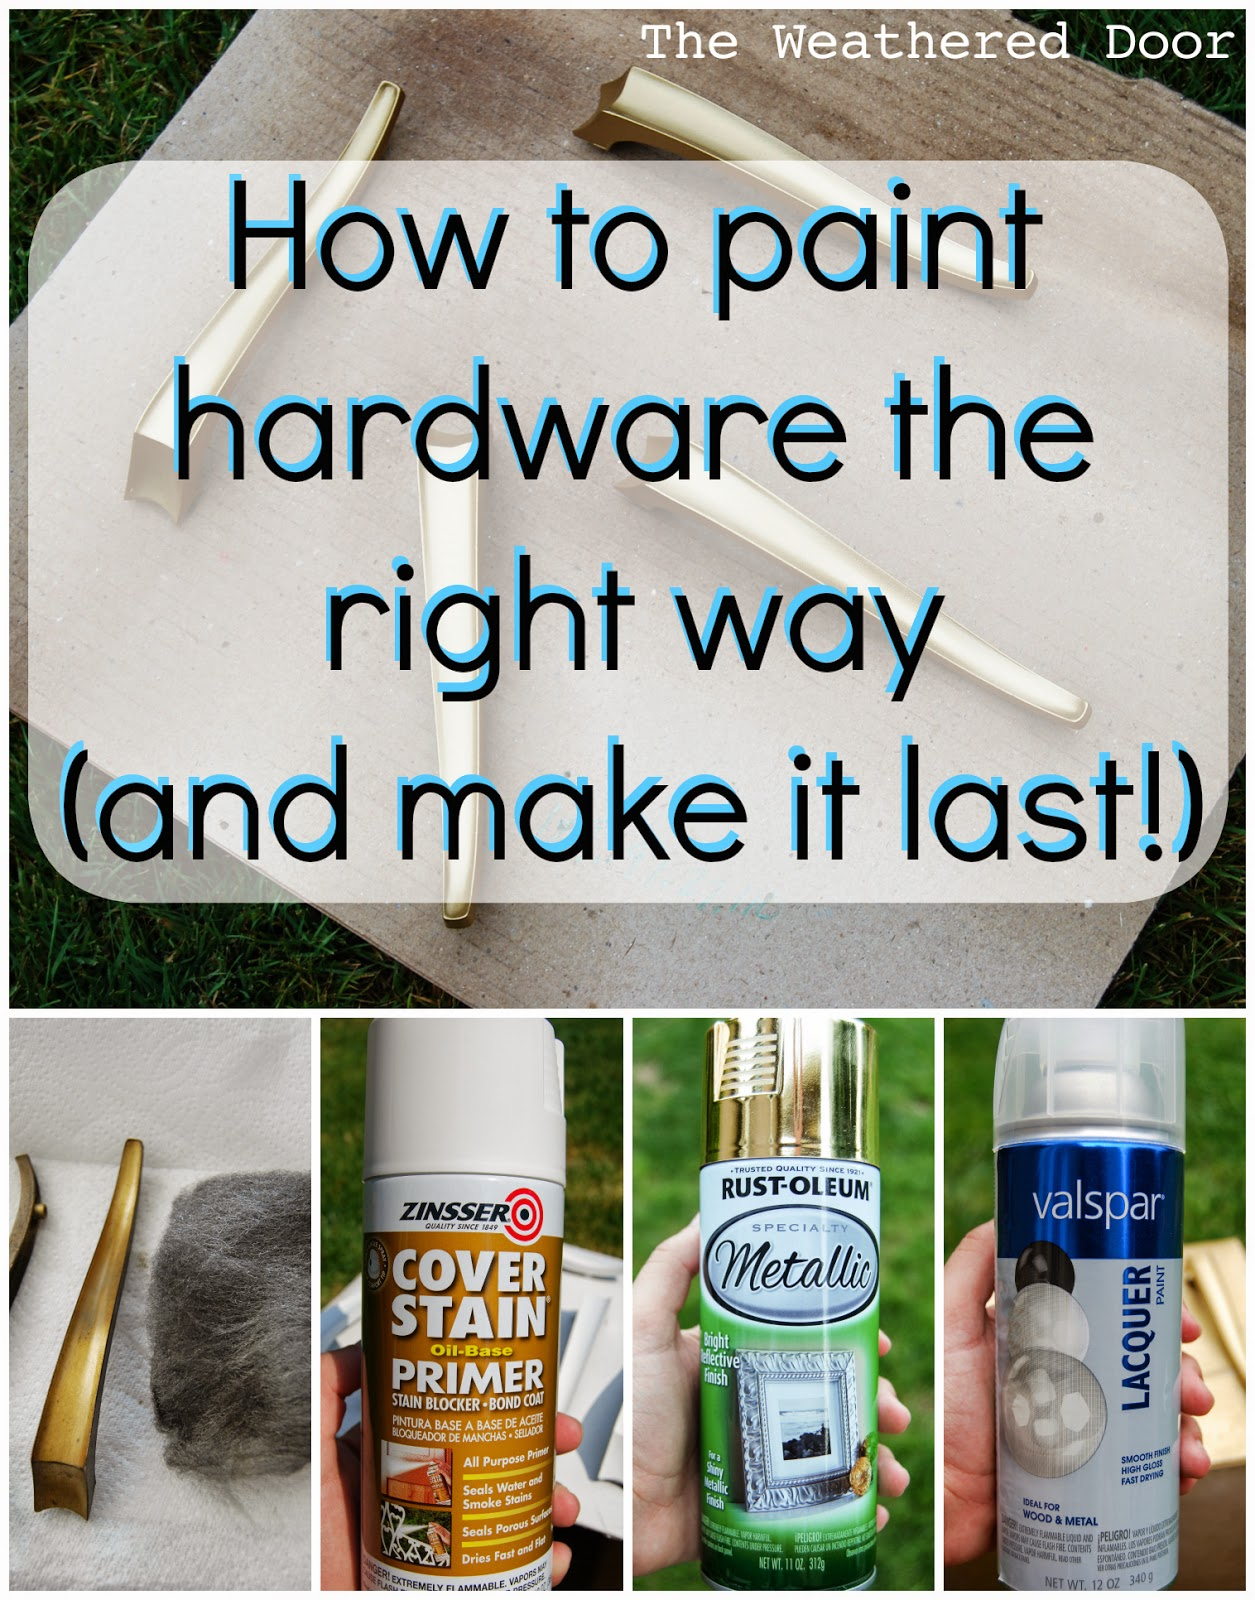 How To Paint Hardware And Make It Last The Weathered